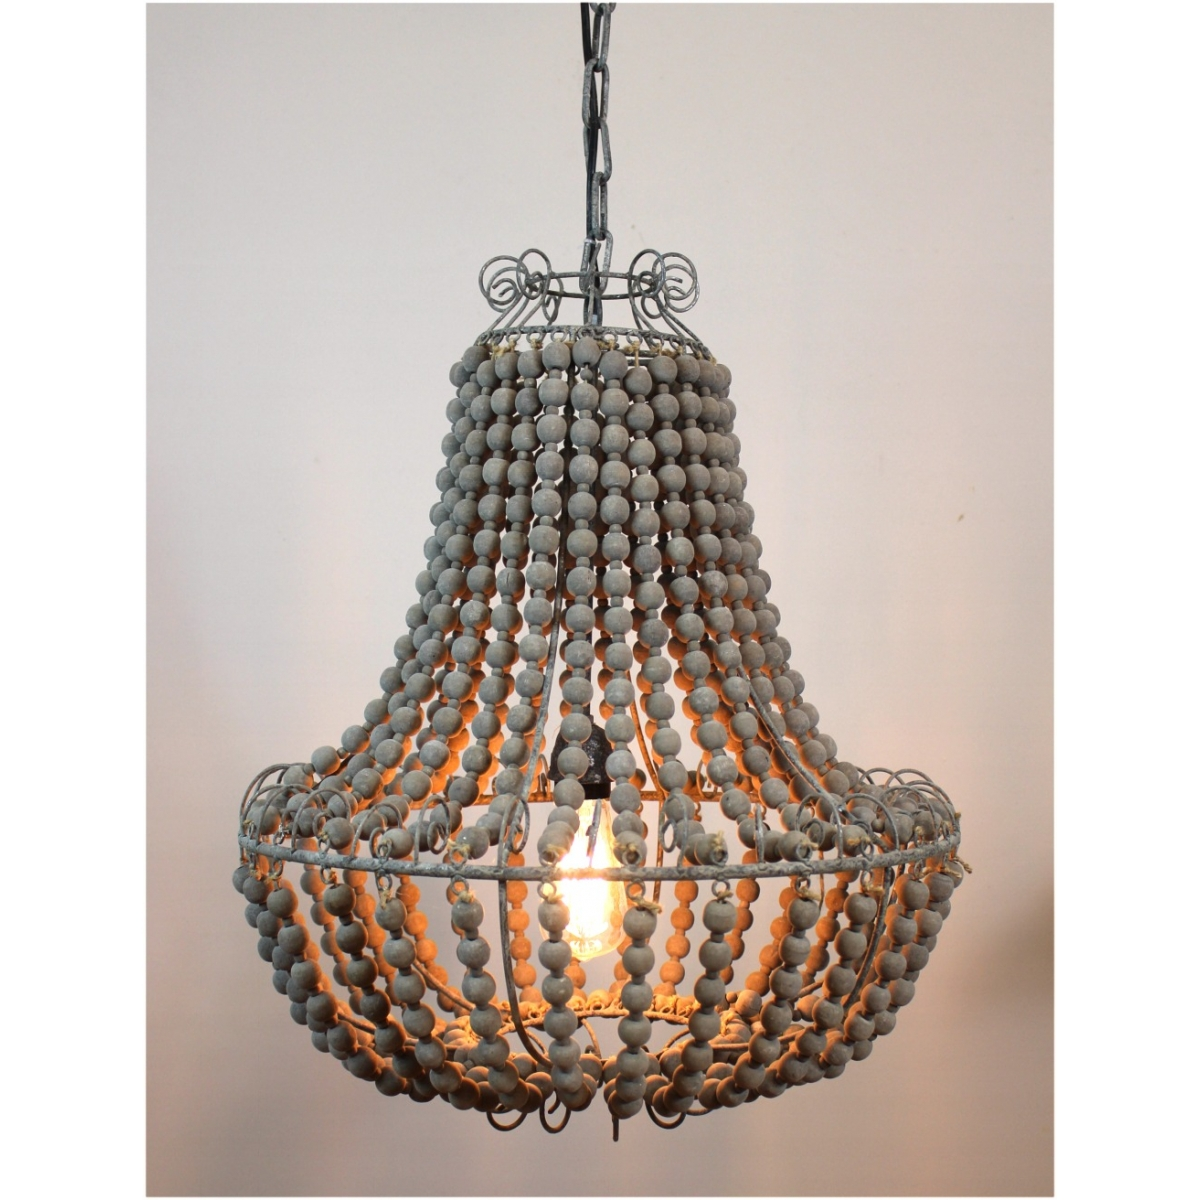 Wood Beaded Chandelier has one of the best kind of other is Beaded Chandelier Wooden  - Elegant Chandeliers